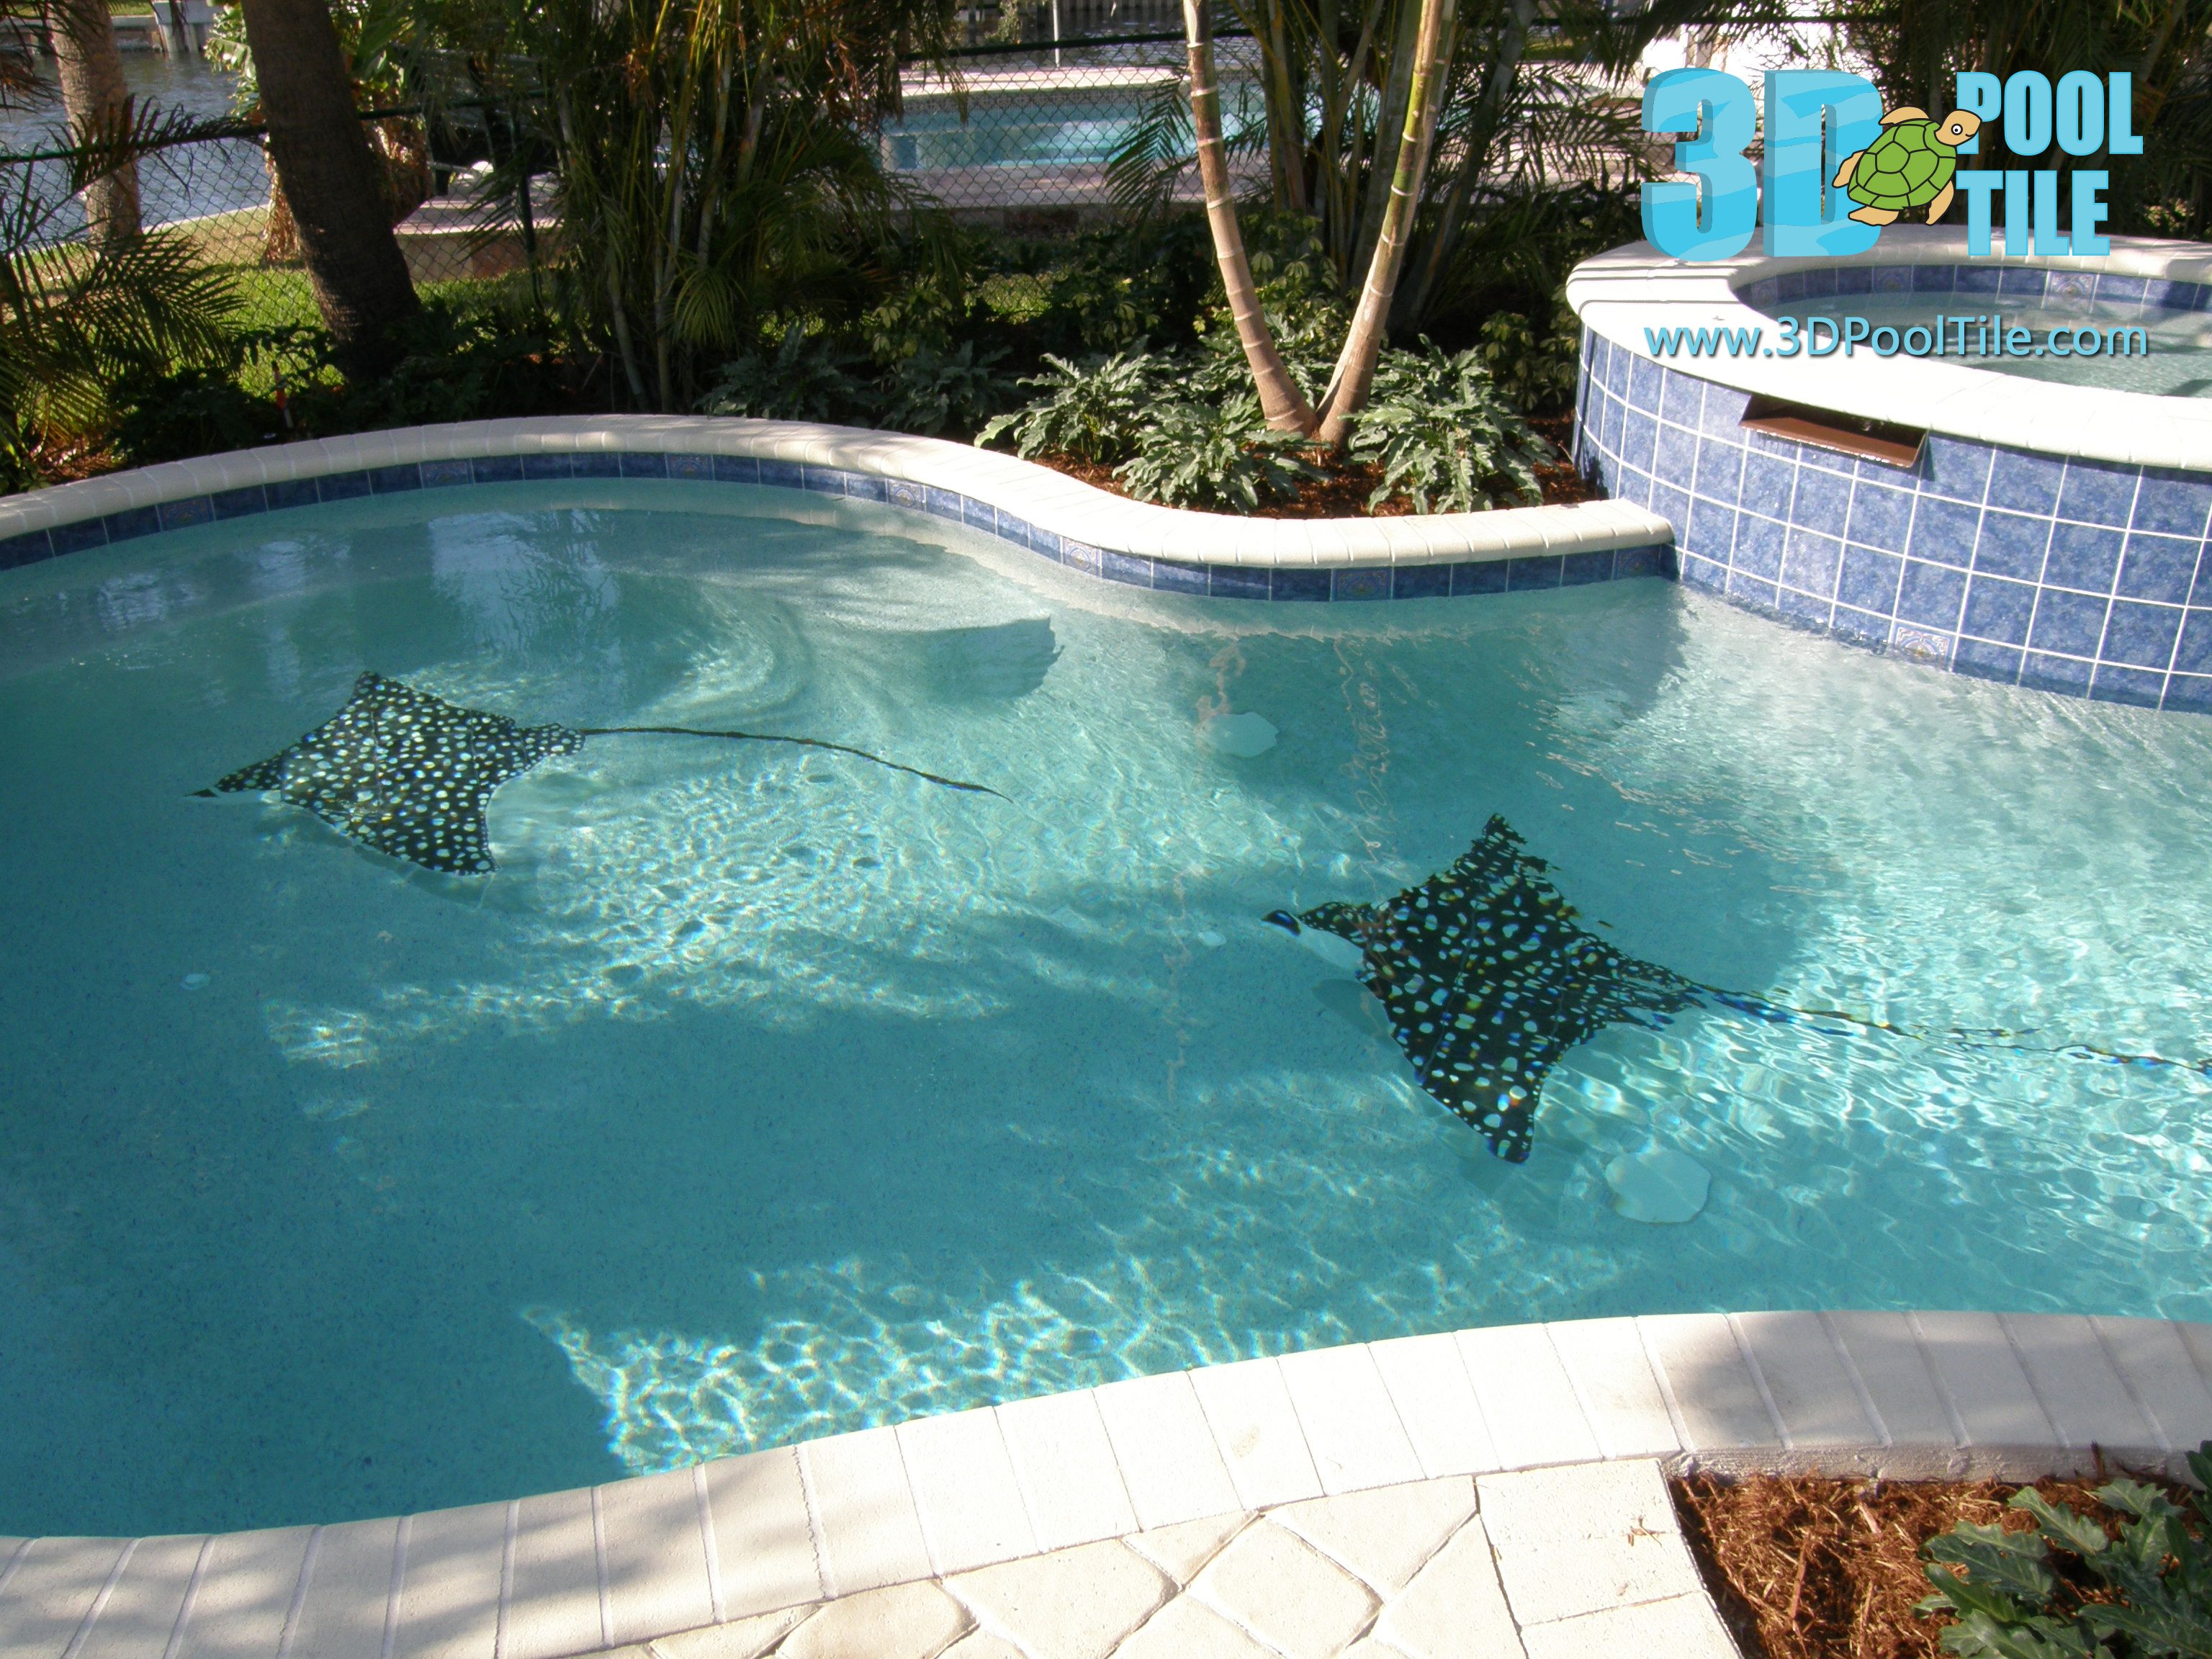 3d Pool Tile Spotted Rays Swimming Pool Tiles Diy Swimming Pool Swimming Pool Construction